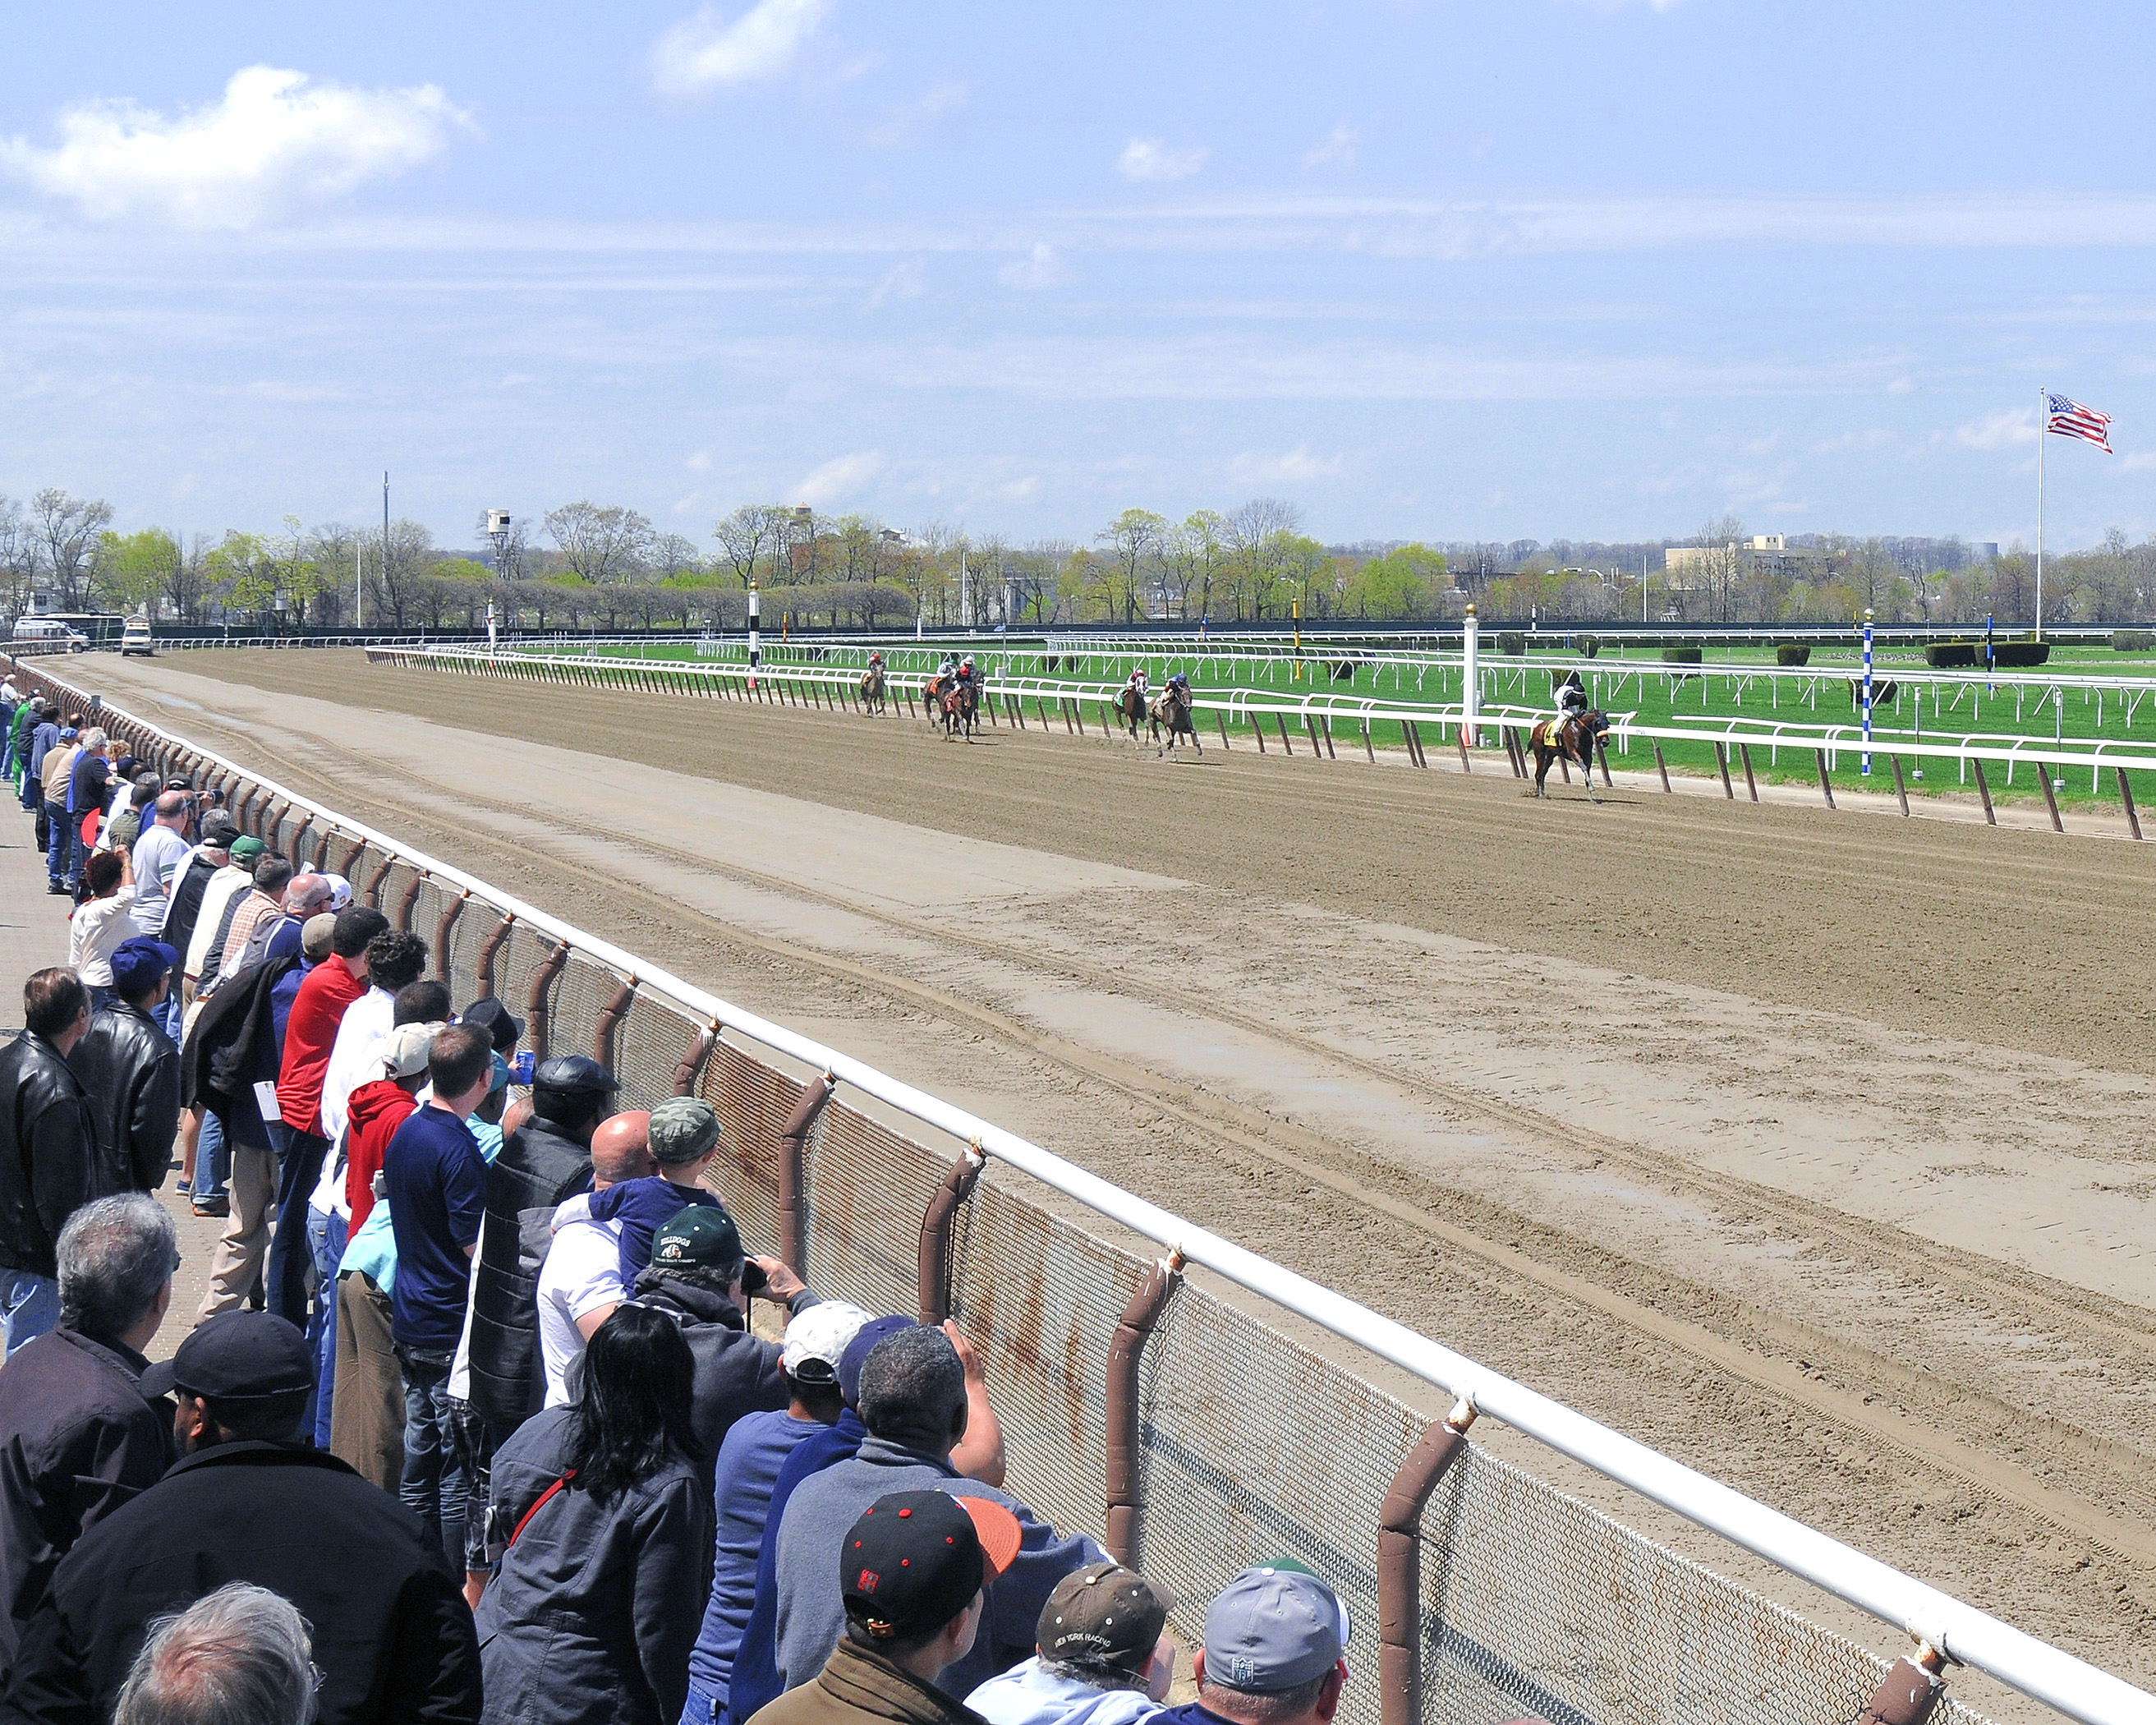 June 7 belmont stakes is a month away yet thoroughbred horse racing